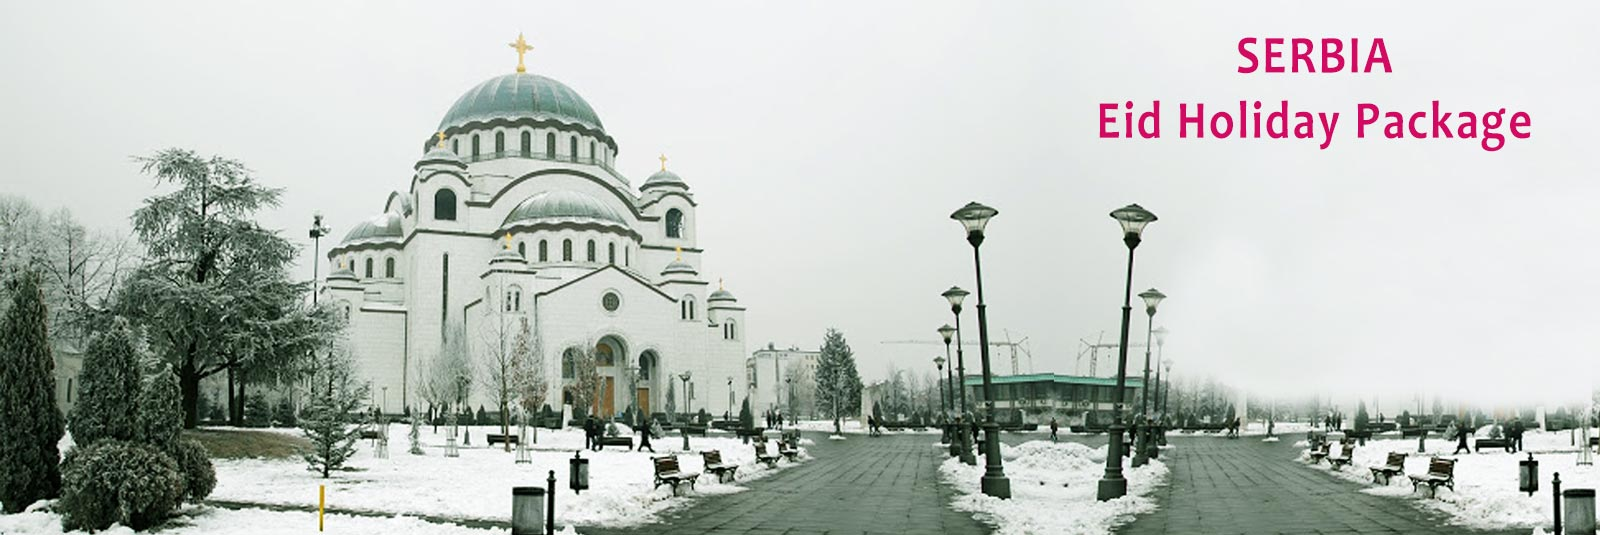 Book Serbia Package, Eid Holiday Package